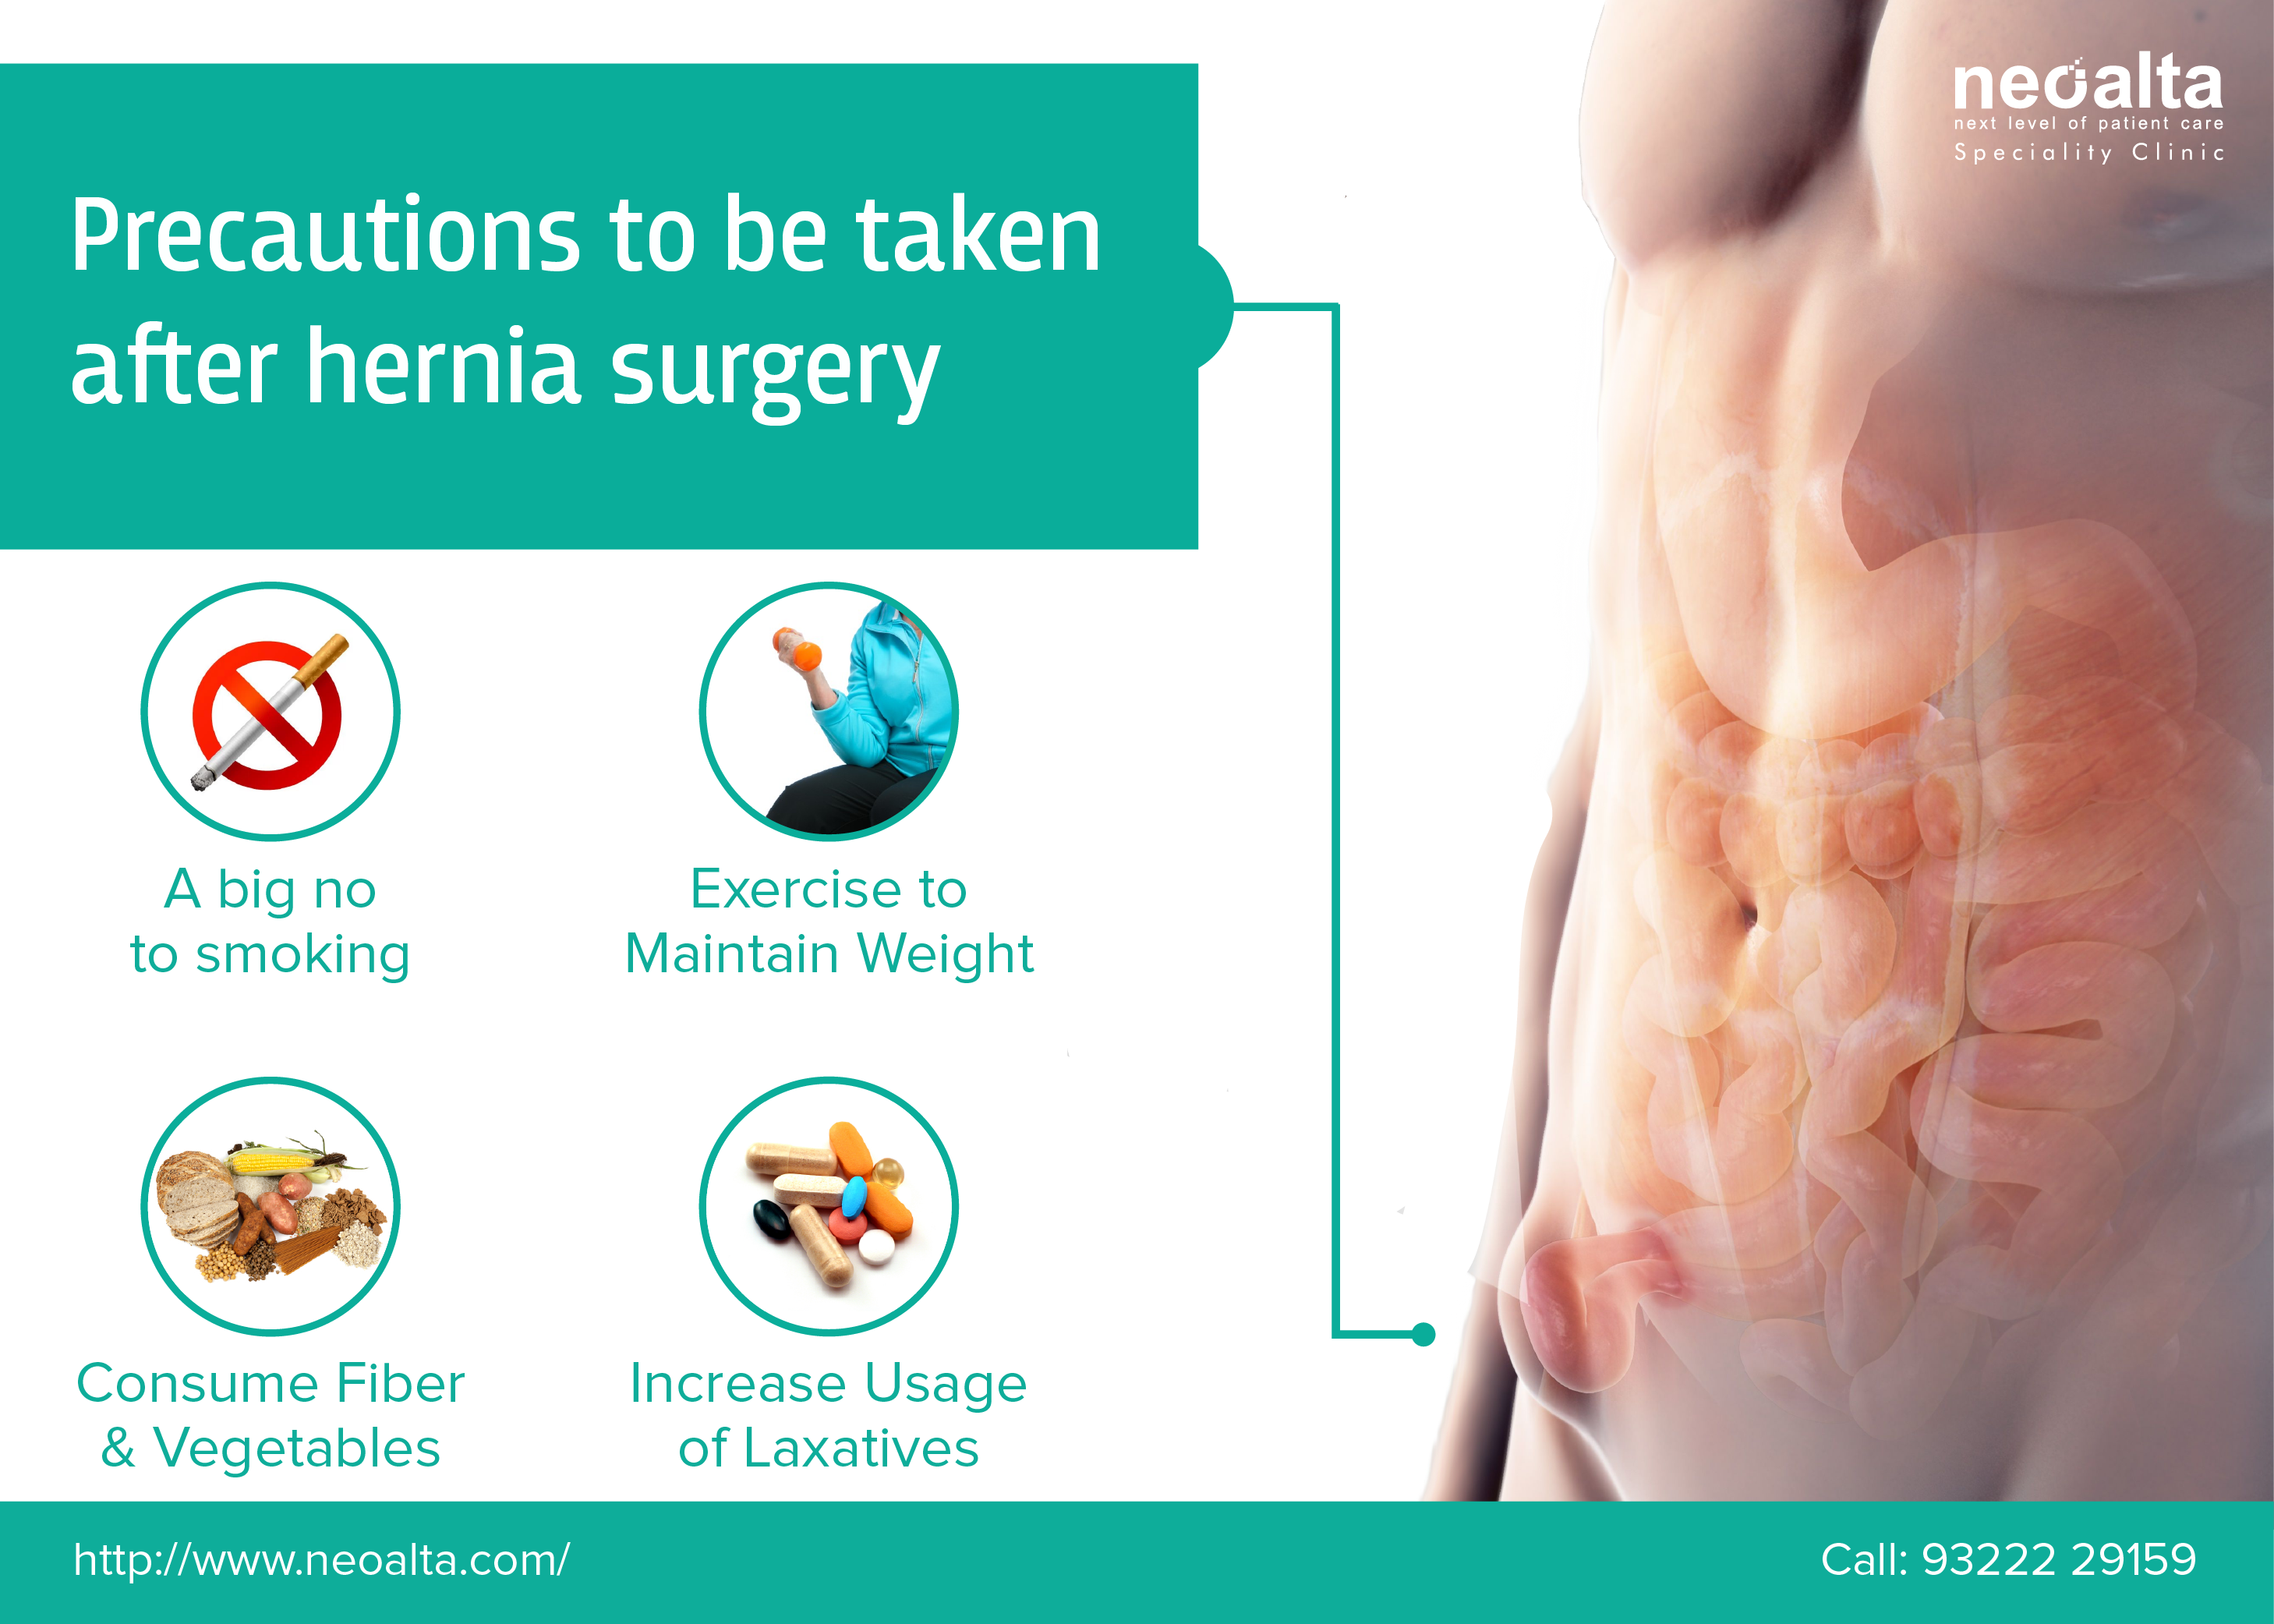 Have you been through a #Hernia #Surgery recently? Watch for these